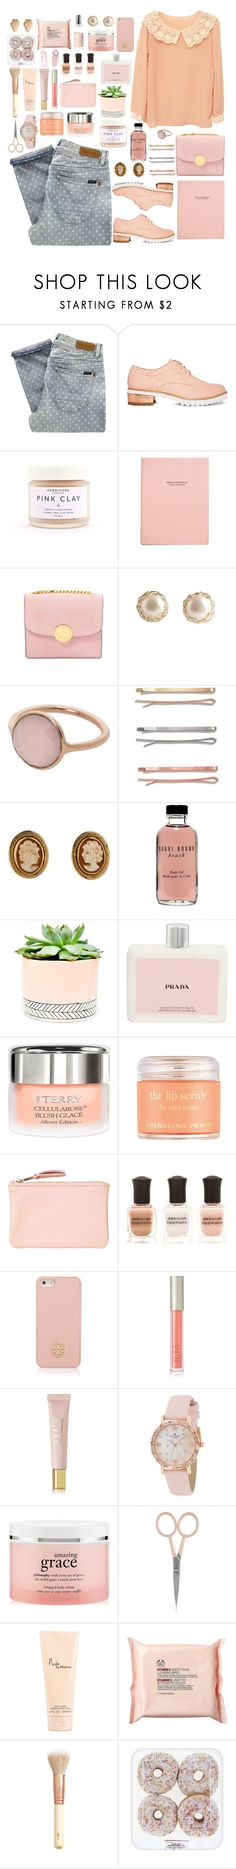 """Cosmic Love"" by annaclaraalvez ❤ liked on Polyvore featuring Paul by Paul Smith, ASOS, Marc Jacobs, YooLa, Marjana von Berlepsch, Madewell, Bobbi Brown Cosmetics, Hostess, Prada and By Terry"